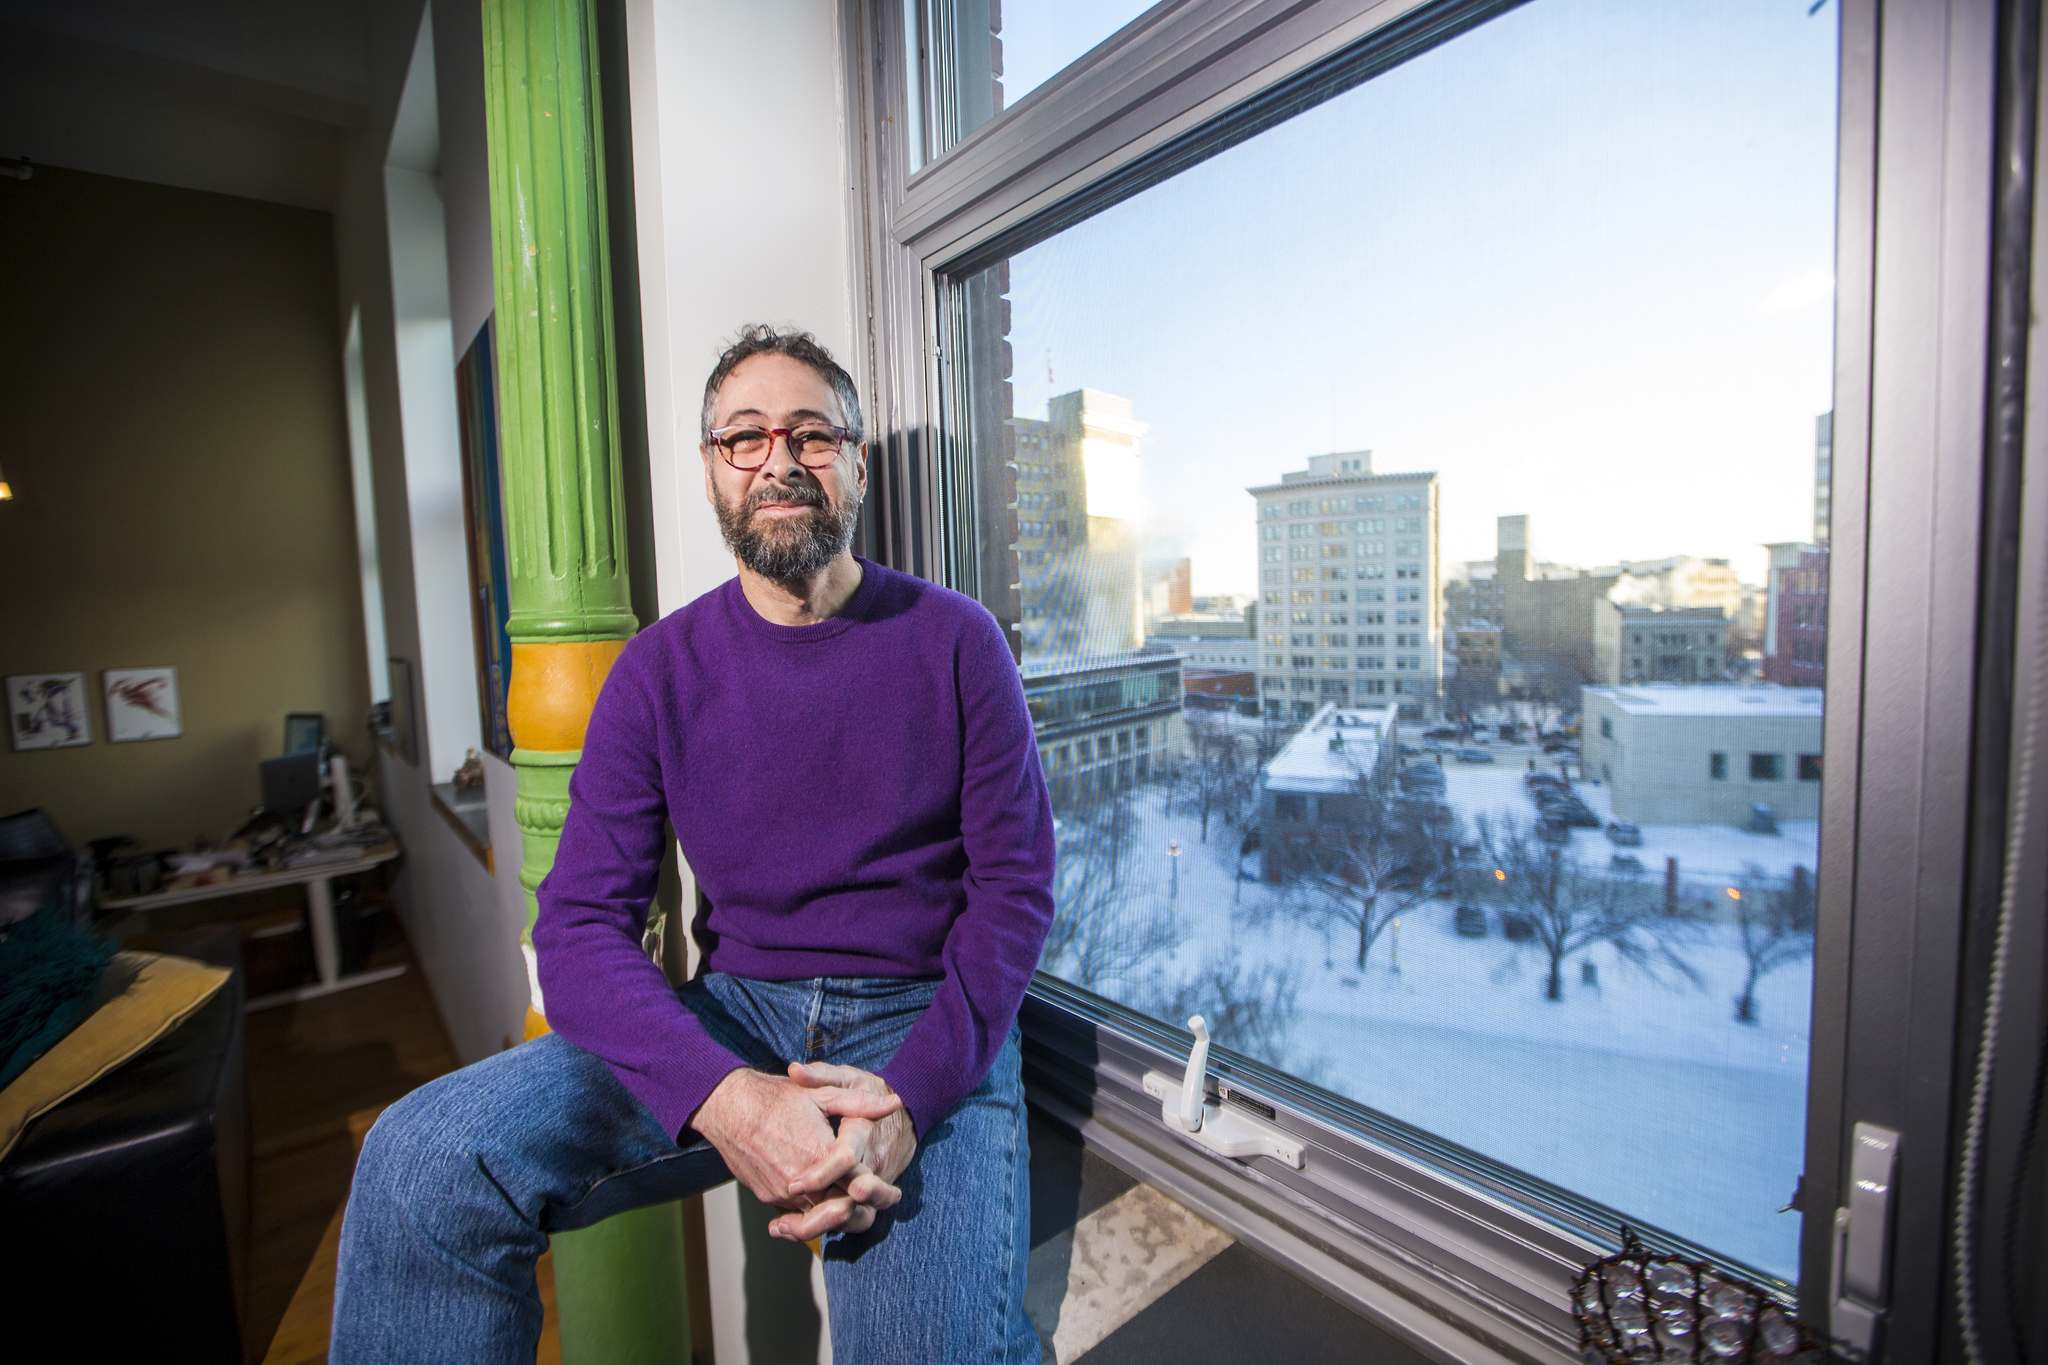 Steve Porter, who moved to the Exchange District 17 years ago, has witnessed a massive growth in population during that time. (Mikaela MacKenzie / Winnipeg Free Press)